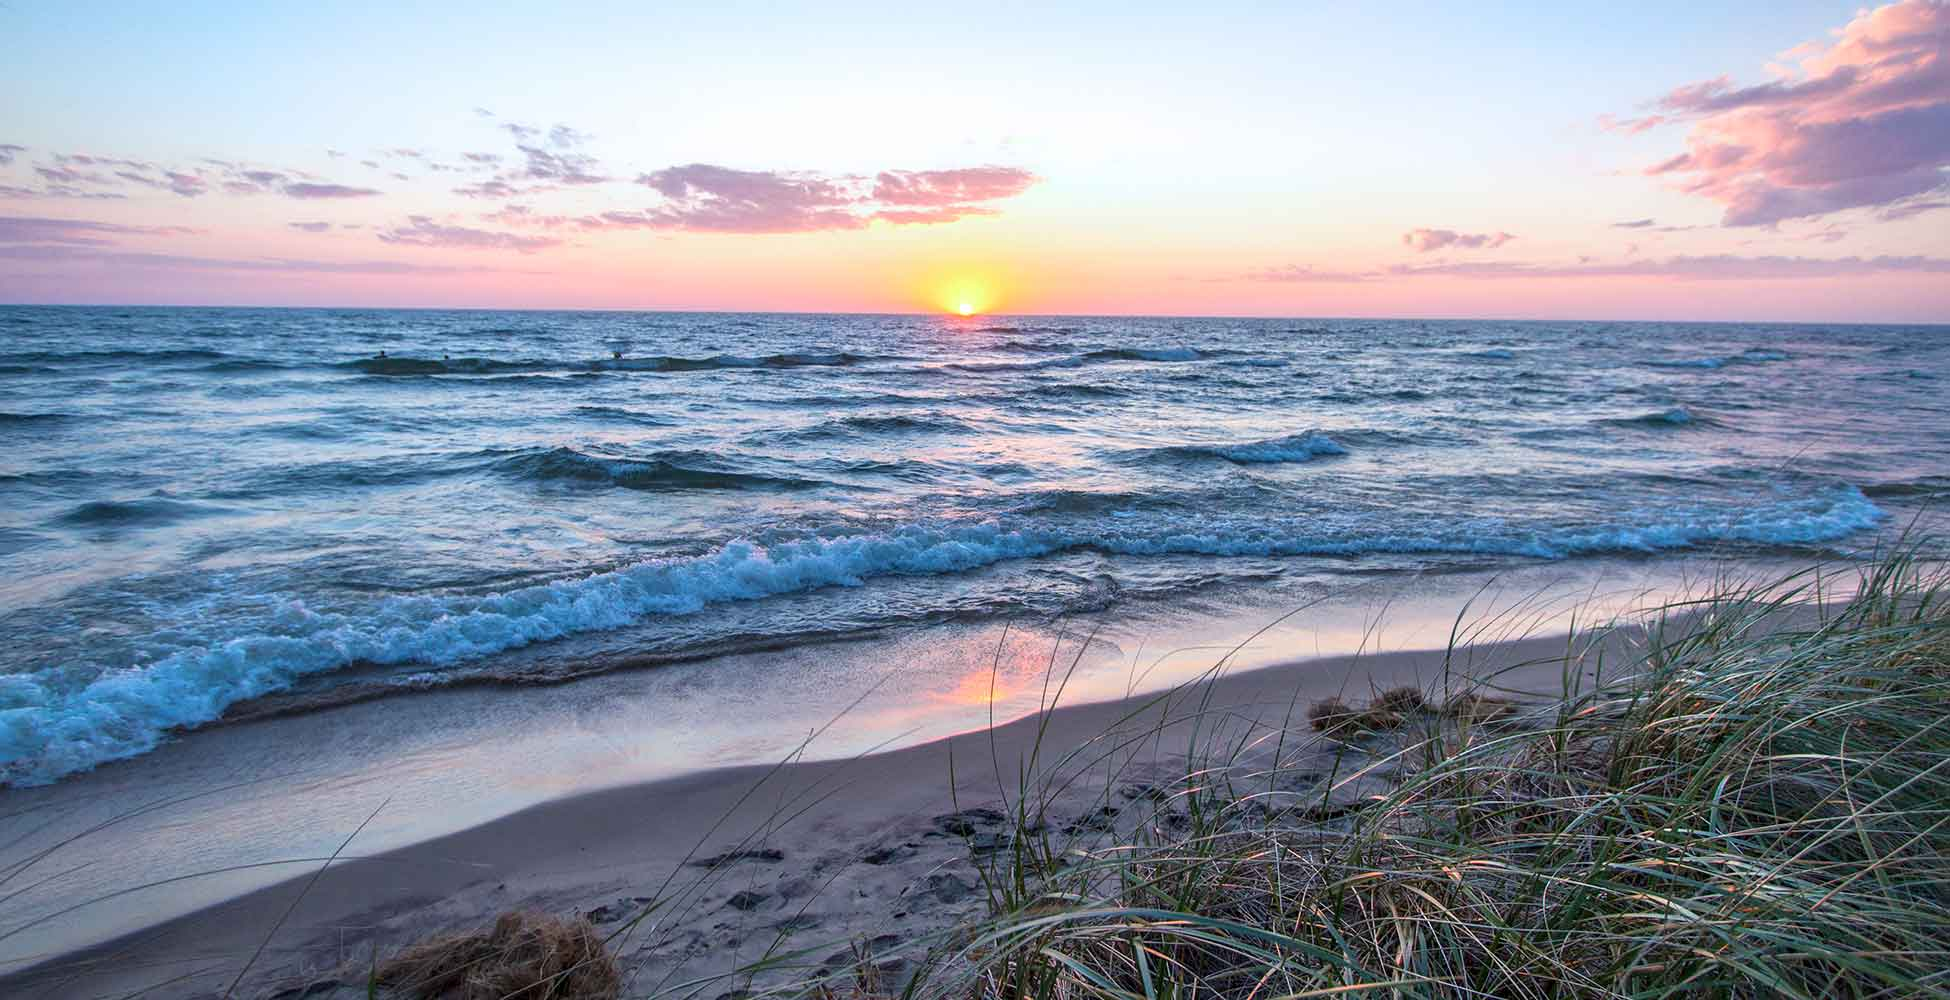 West Michigan beach at sunset